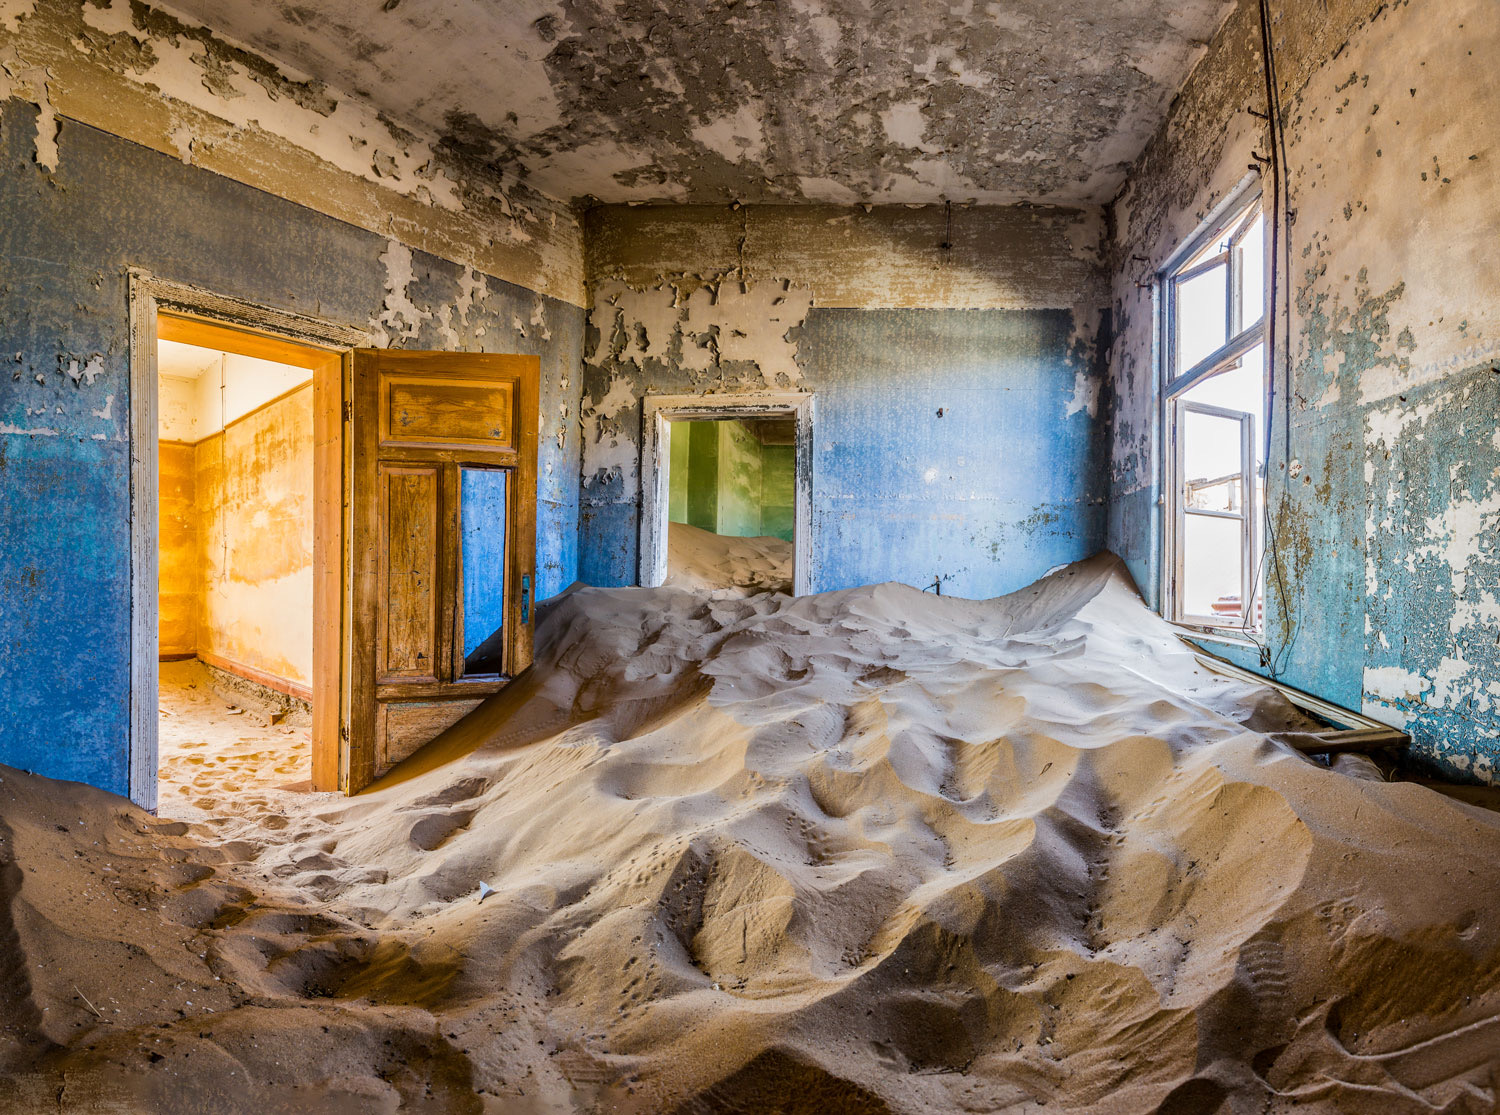 Namibia Luxury Safari Ghost town of Kolmanskop